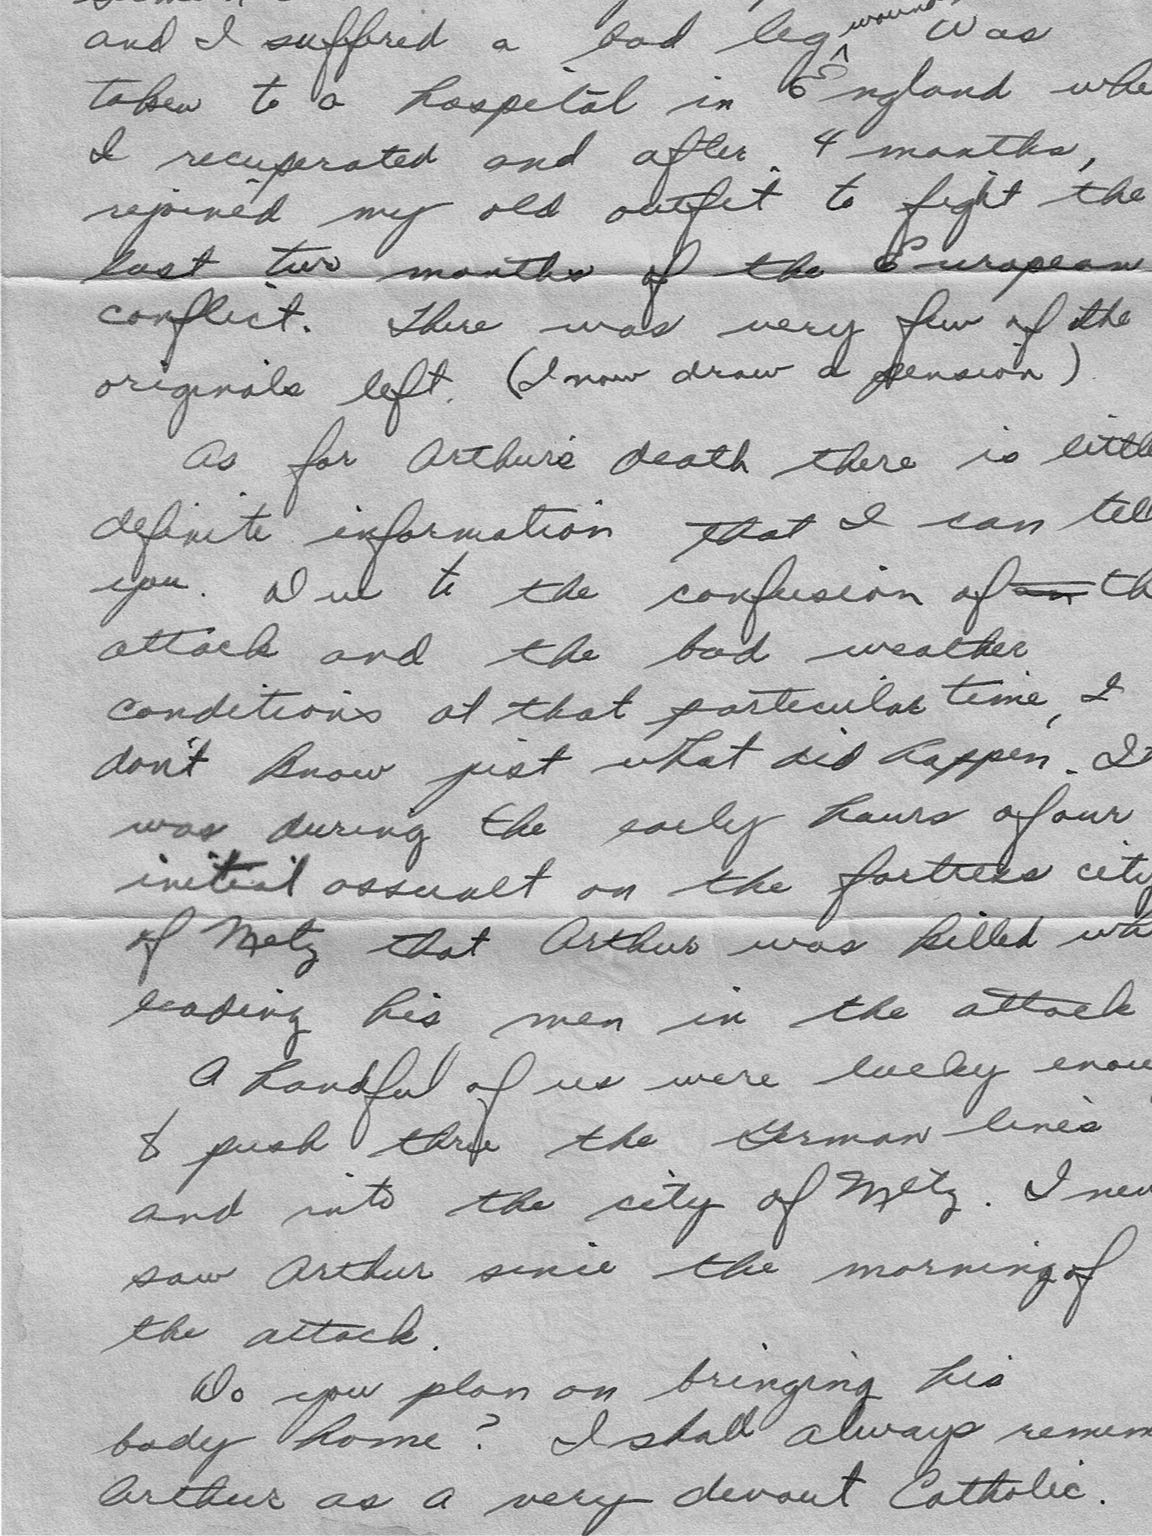 The portion of the letter from a fellow soldier to